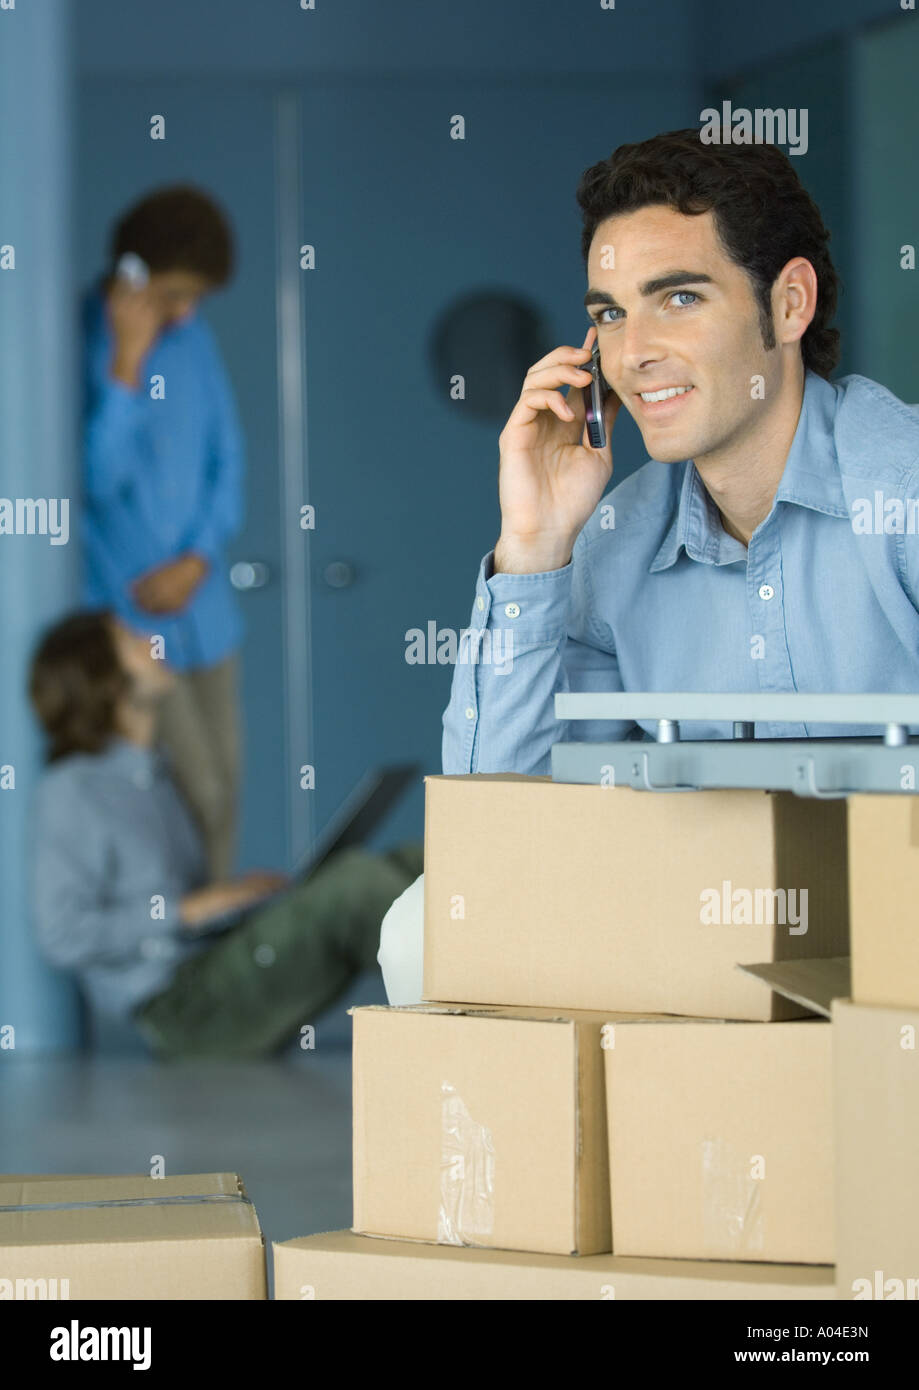 Young businessman using cellphone, sitting at table supported by cardboard boxes - Stock Image